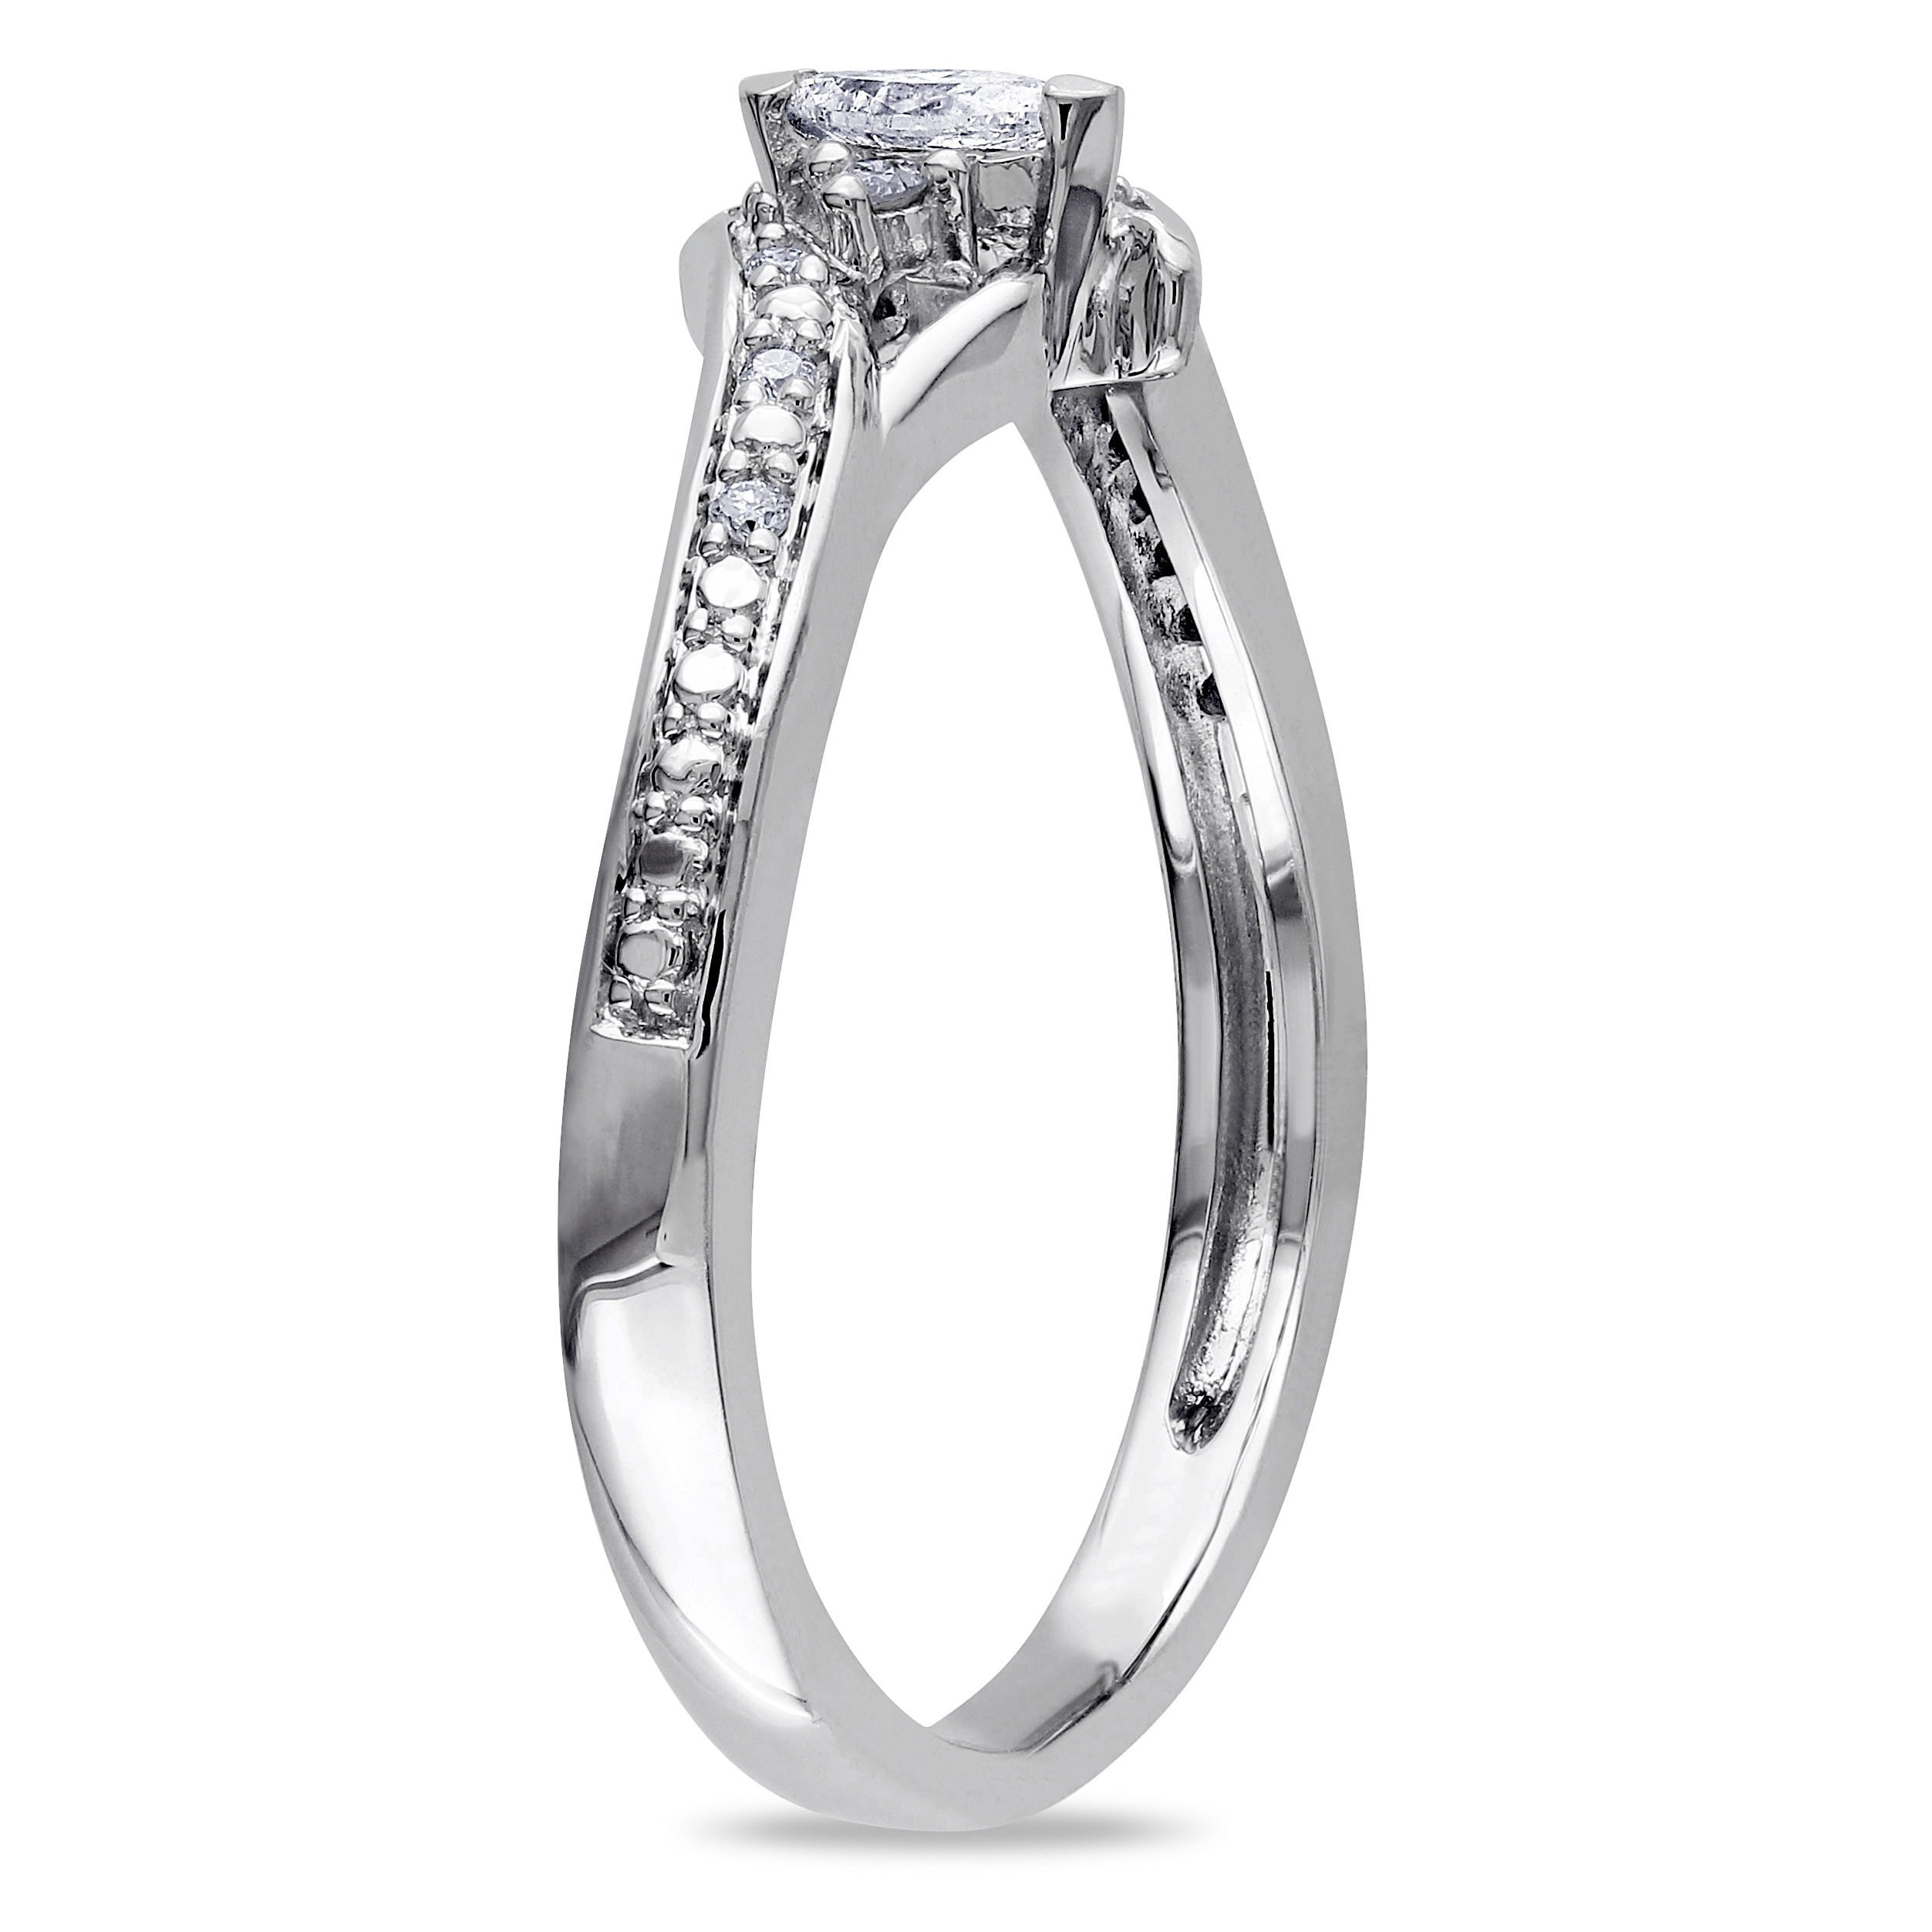 Engagement & Wedding Bridal & Wedding Party Jewelry 1 Carat G-h Diamond Anniversary Solitaire Bridal Ring Band Set 14k White Gold To Win Warm Praise From Customers